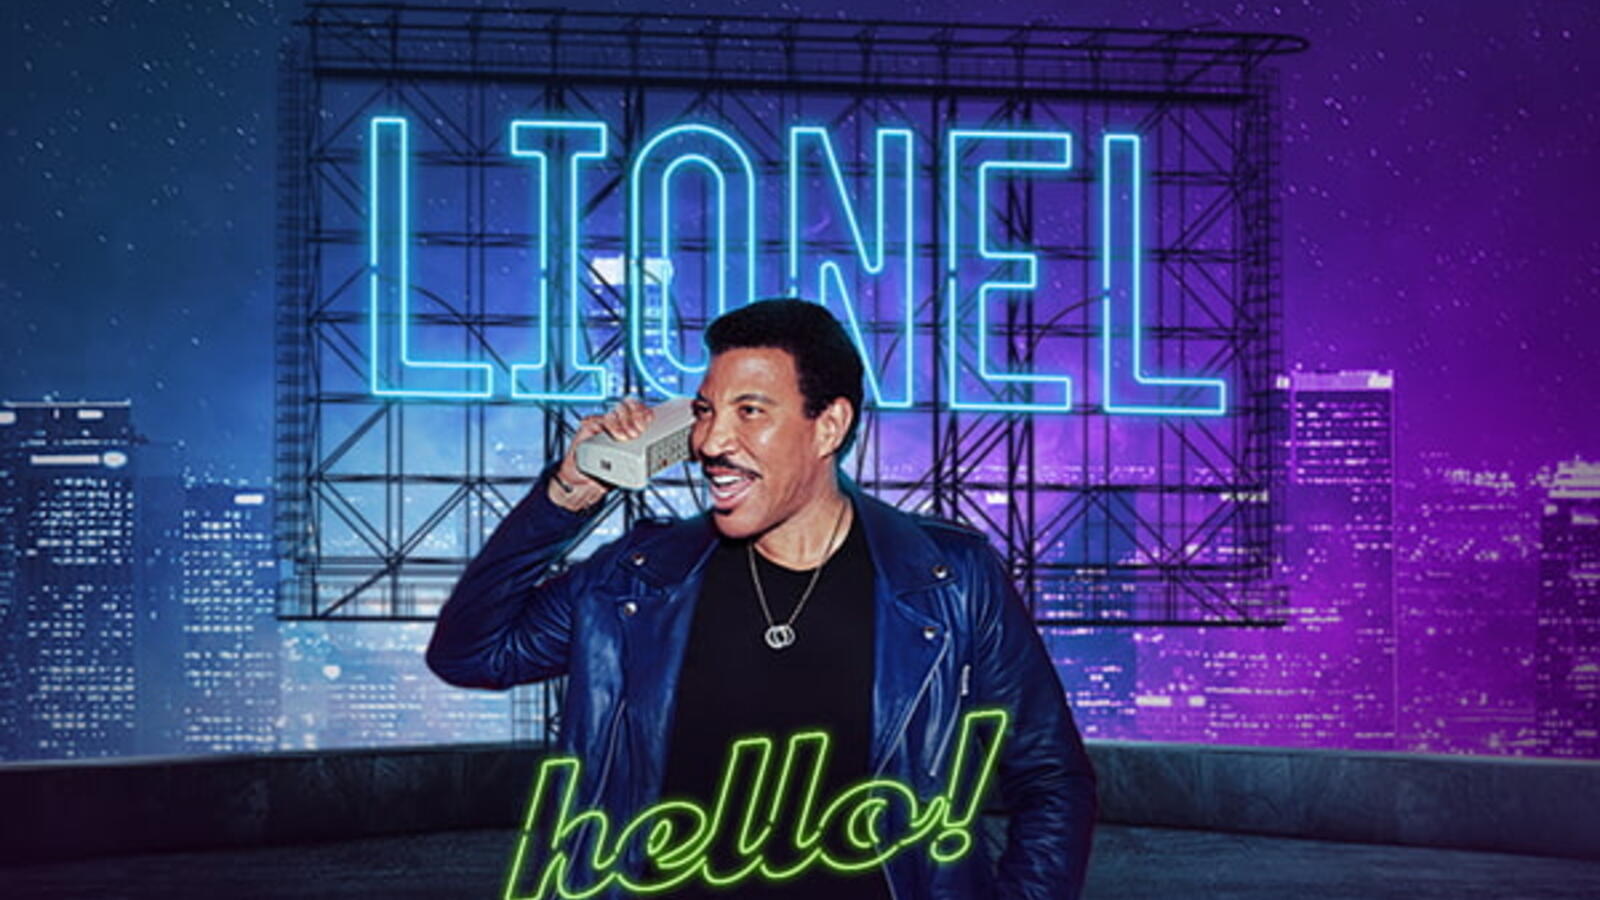 Dubai Jazz Festival: Lionel Richie on Feb 27th at Media City Amphitheatre